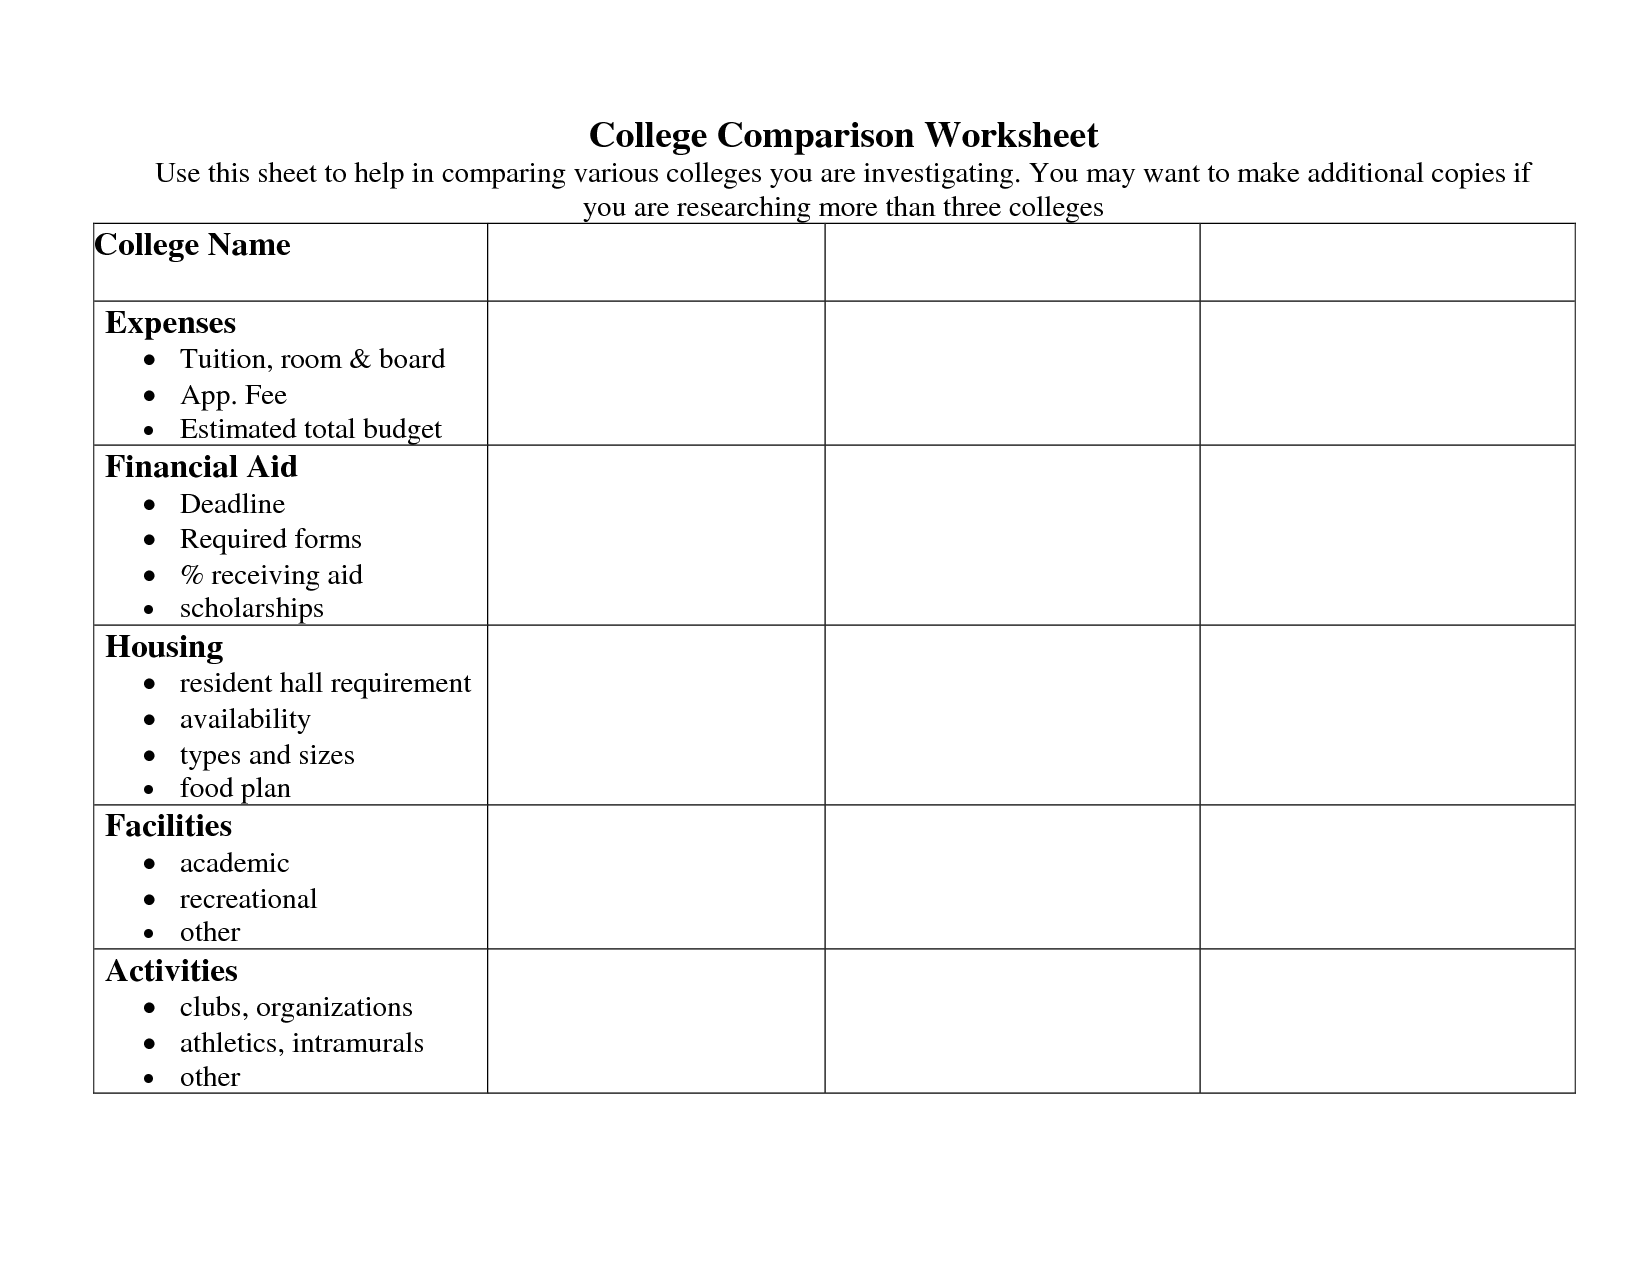 027 Compare And Contrast Essay Graphic Organizer Example College 652630 Wondrous Middle School Full